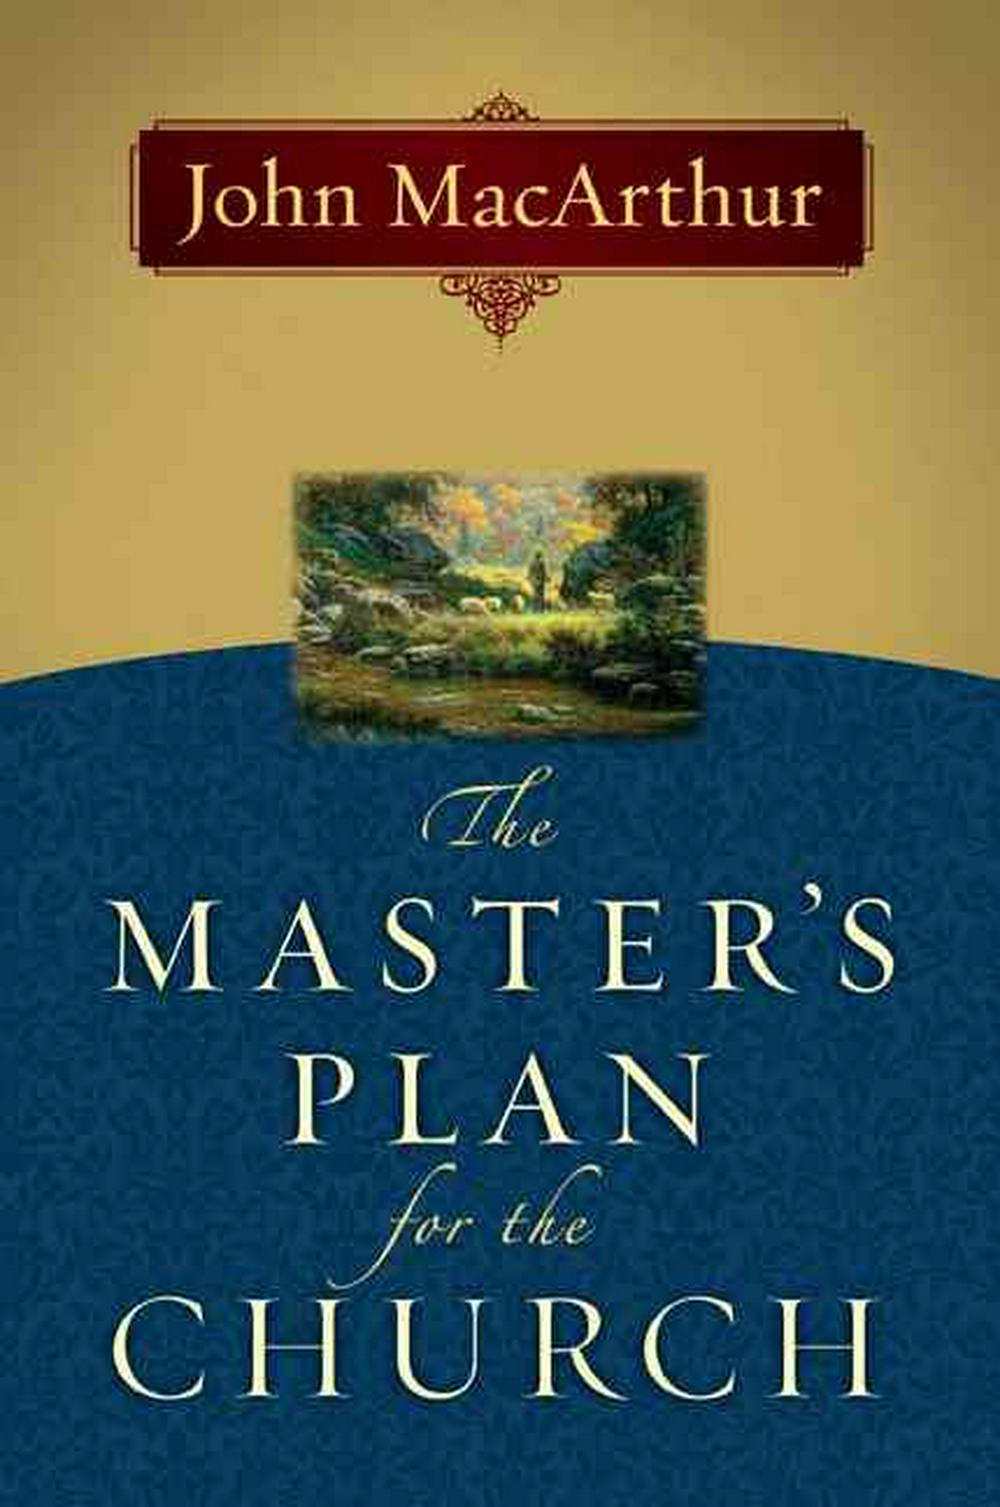 The Master's Plan for the Church by John MacArthur, ISBN: 9780802478450